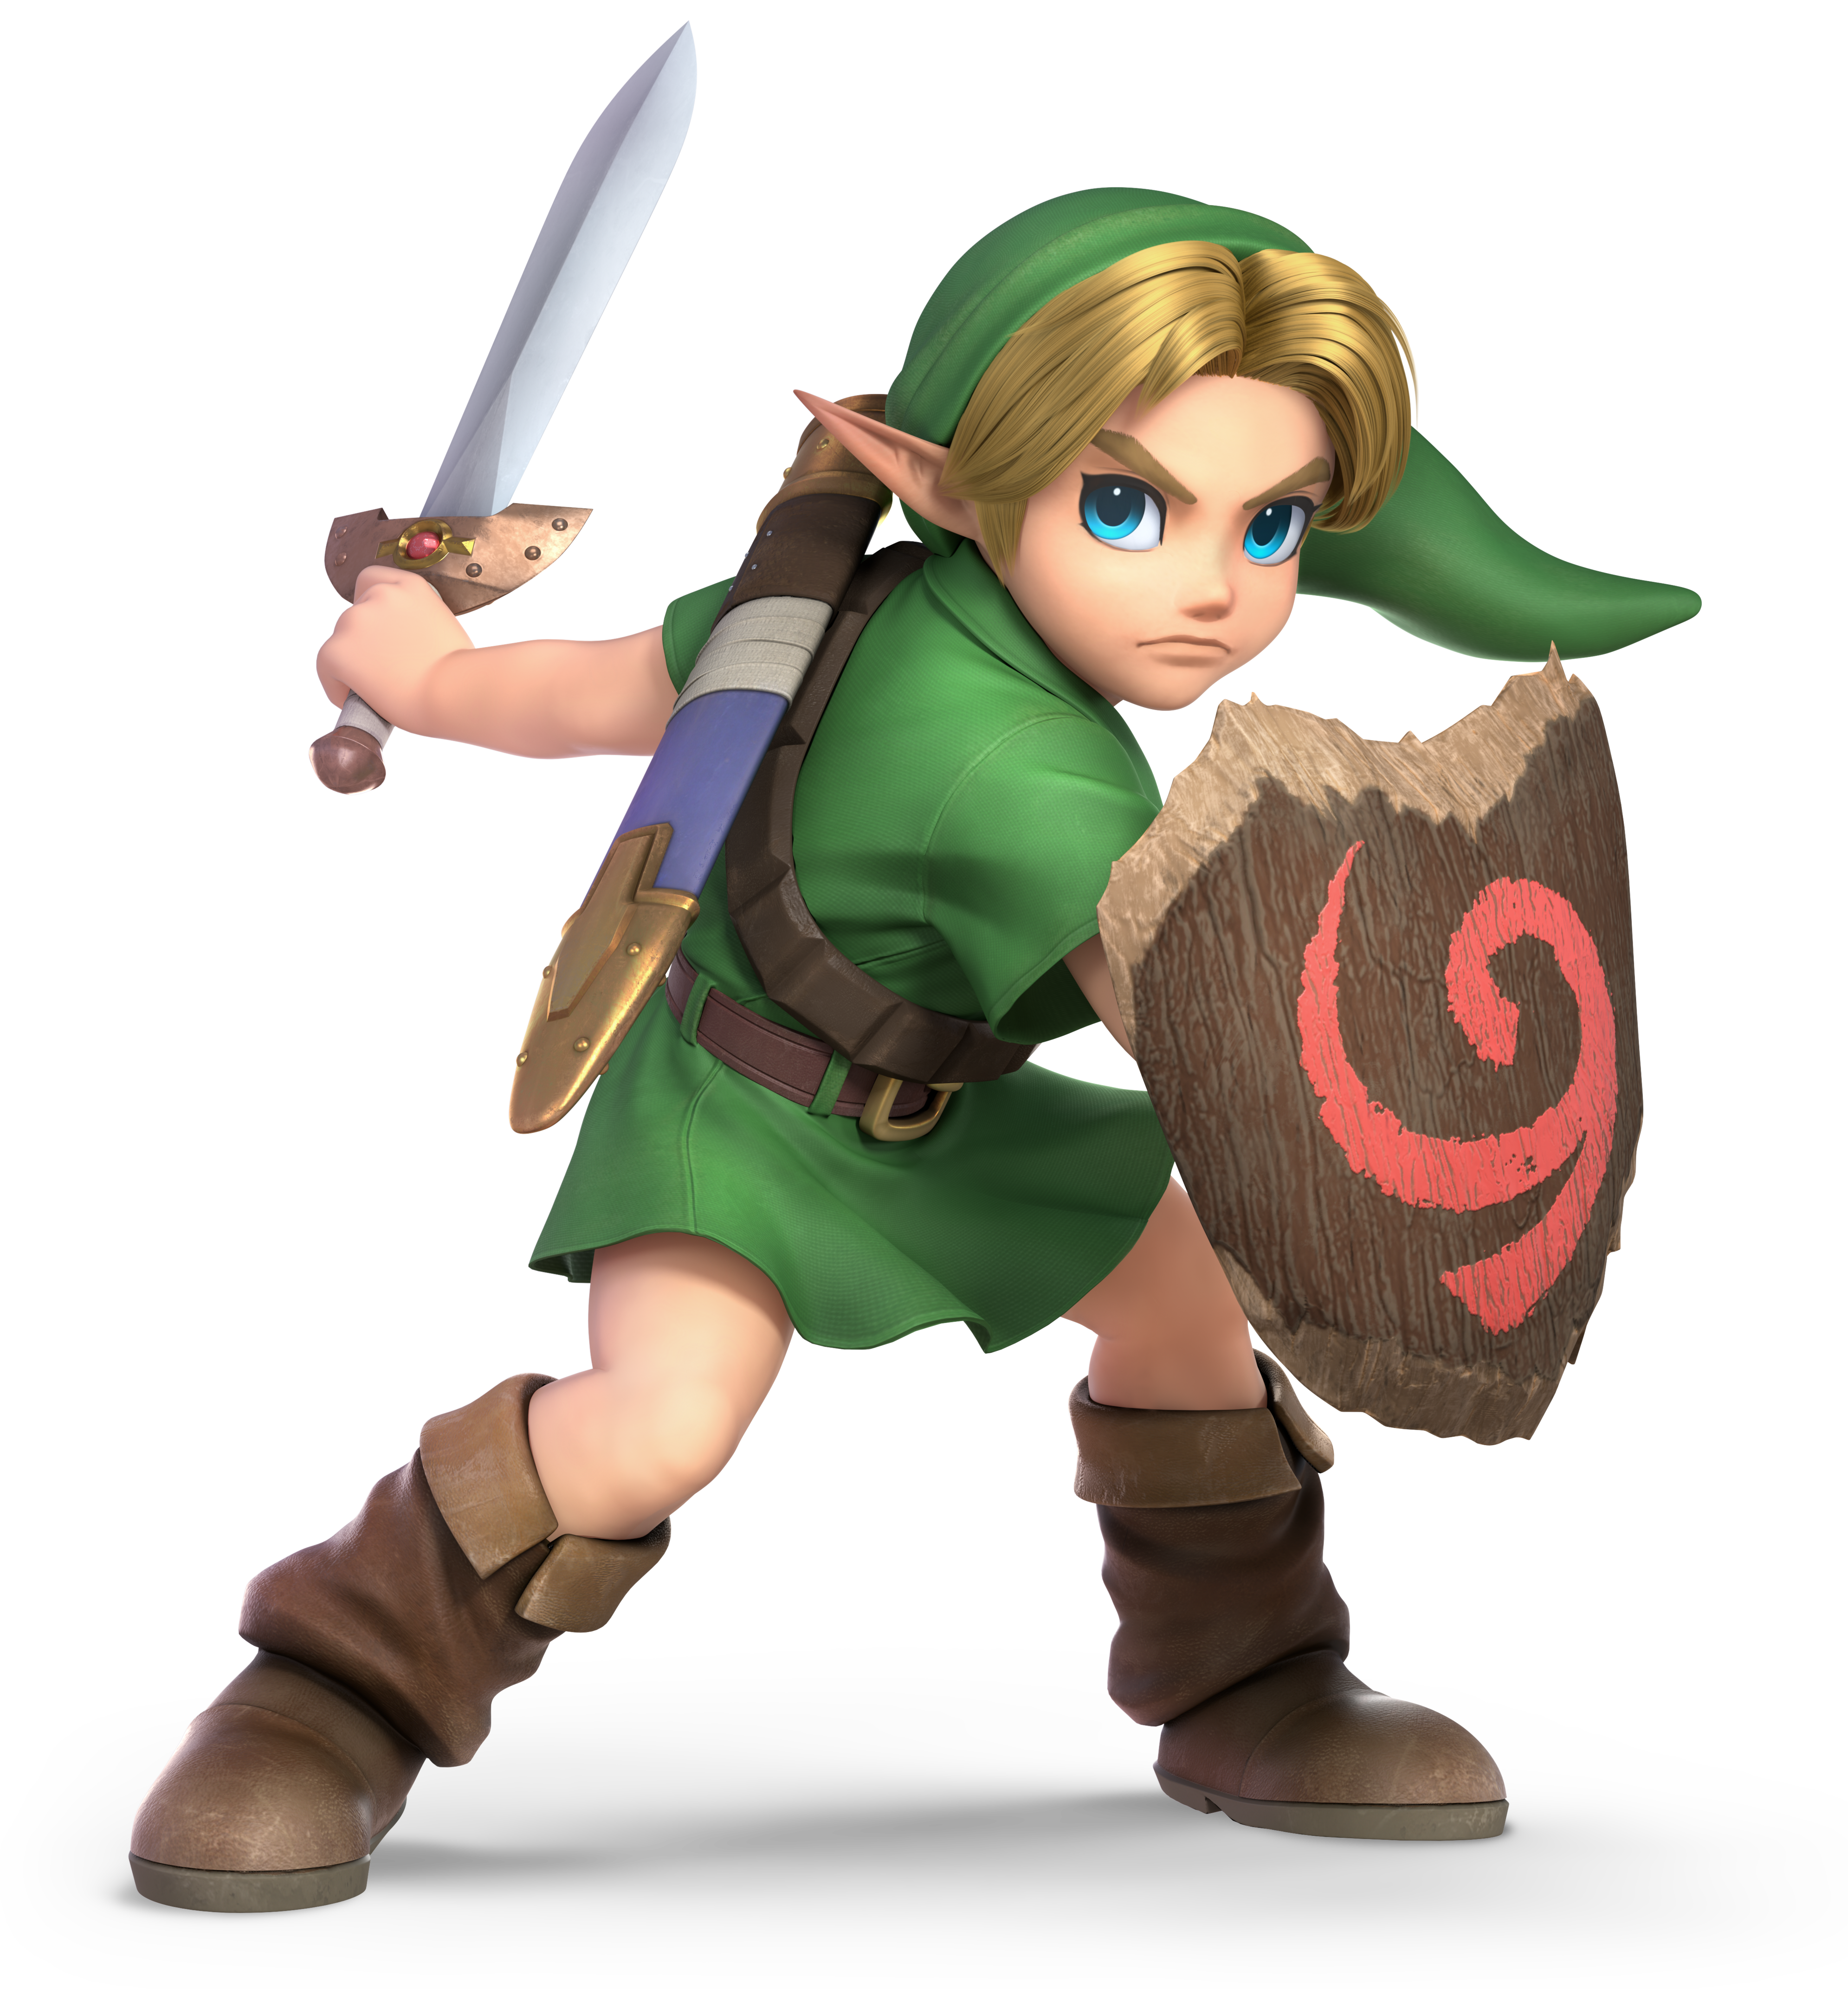 Fower42/PG Proposal: Young Link